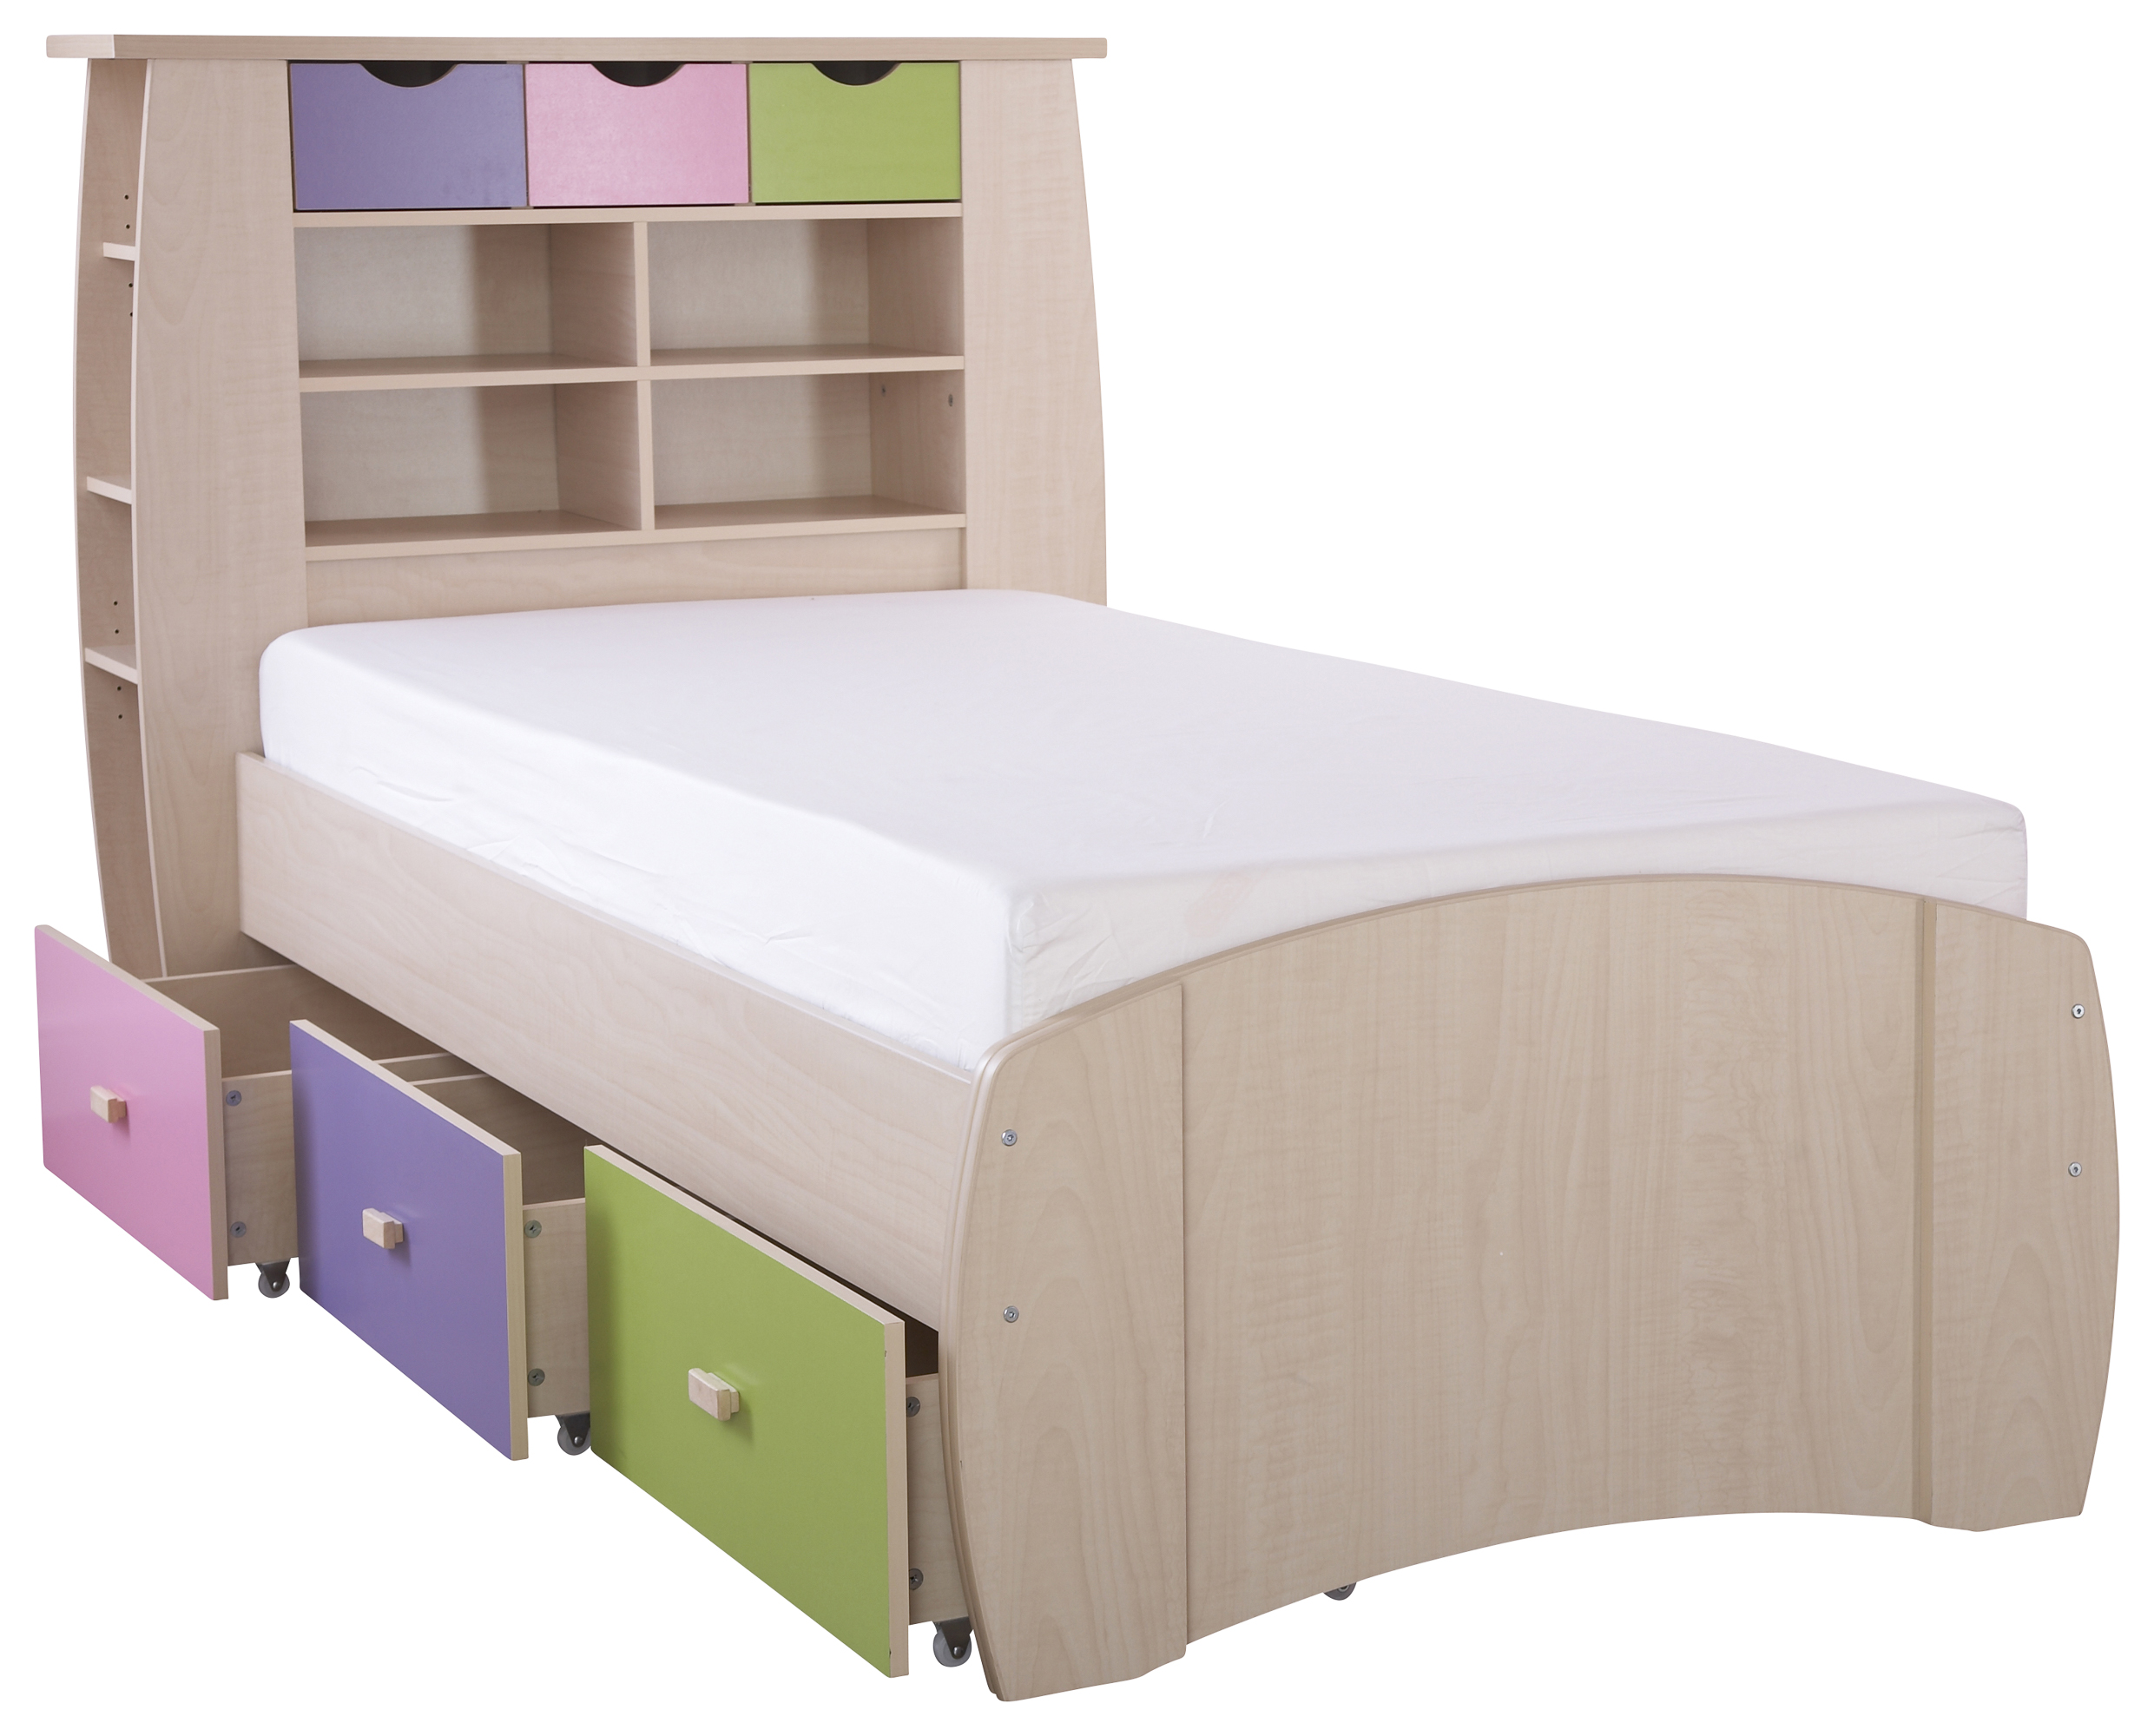 Details About 3ft Single Bed With Storage Drawers Shelves Bookcase Girls  Bed Maple Pink Lilac